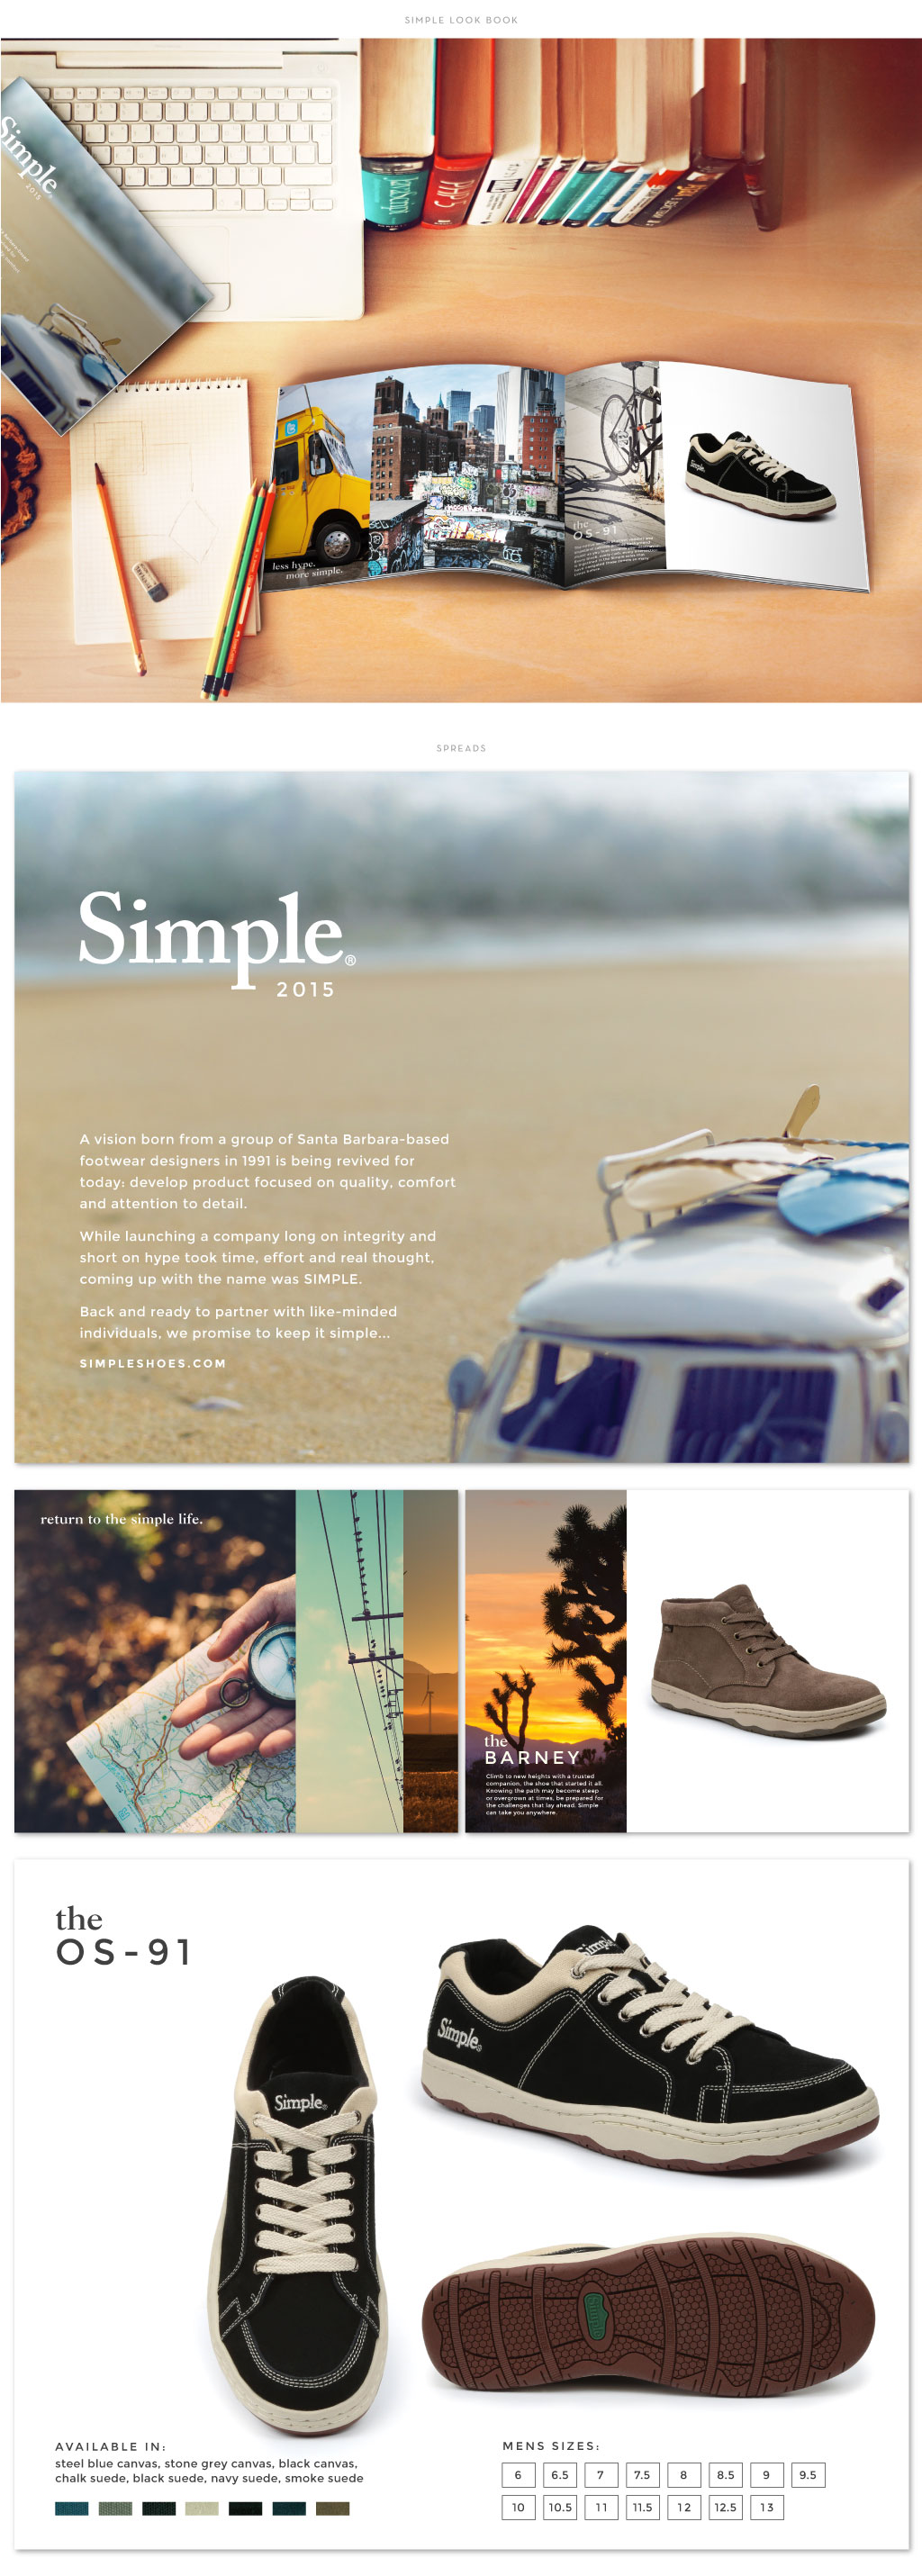 Simple Shoes look book design by M studio